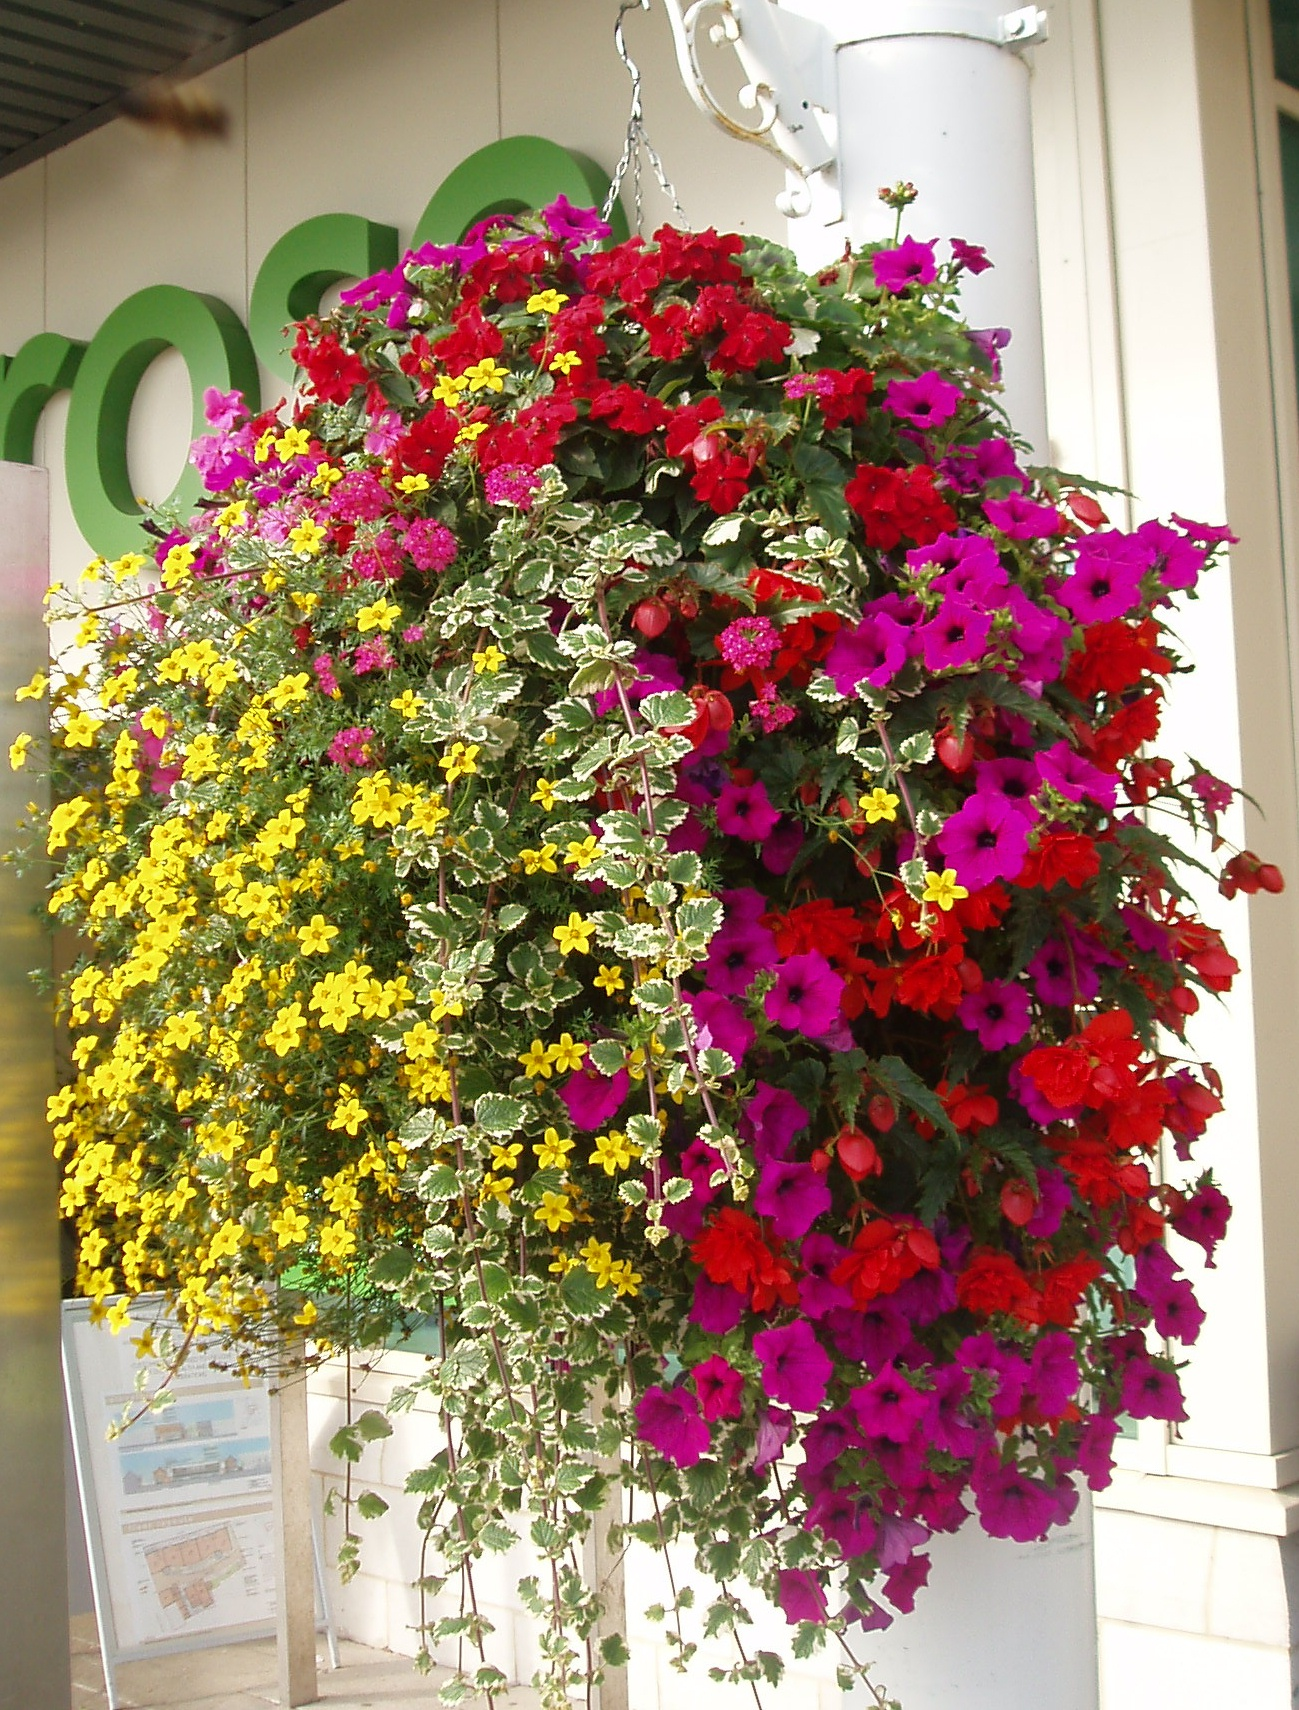 Hanging Flower Baskets Calgary : About us choice plants